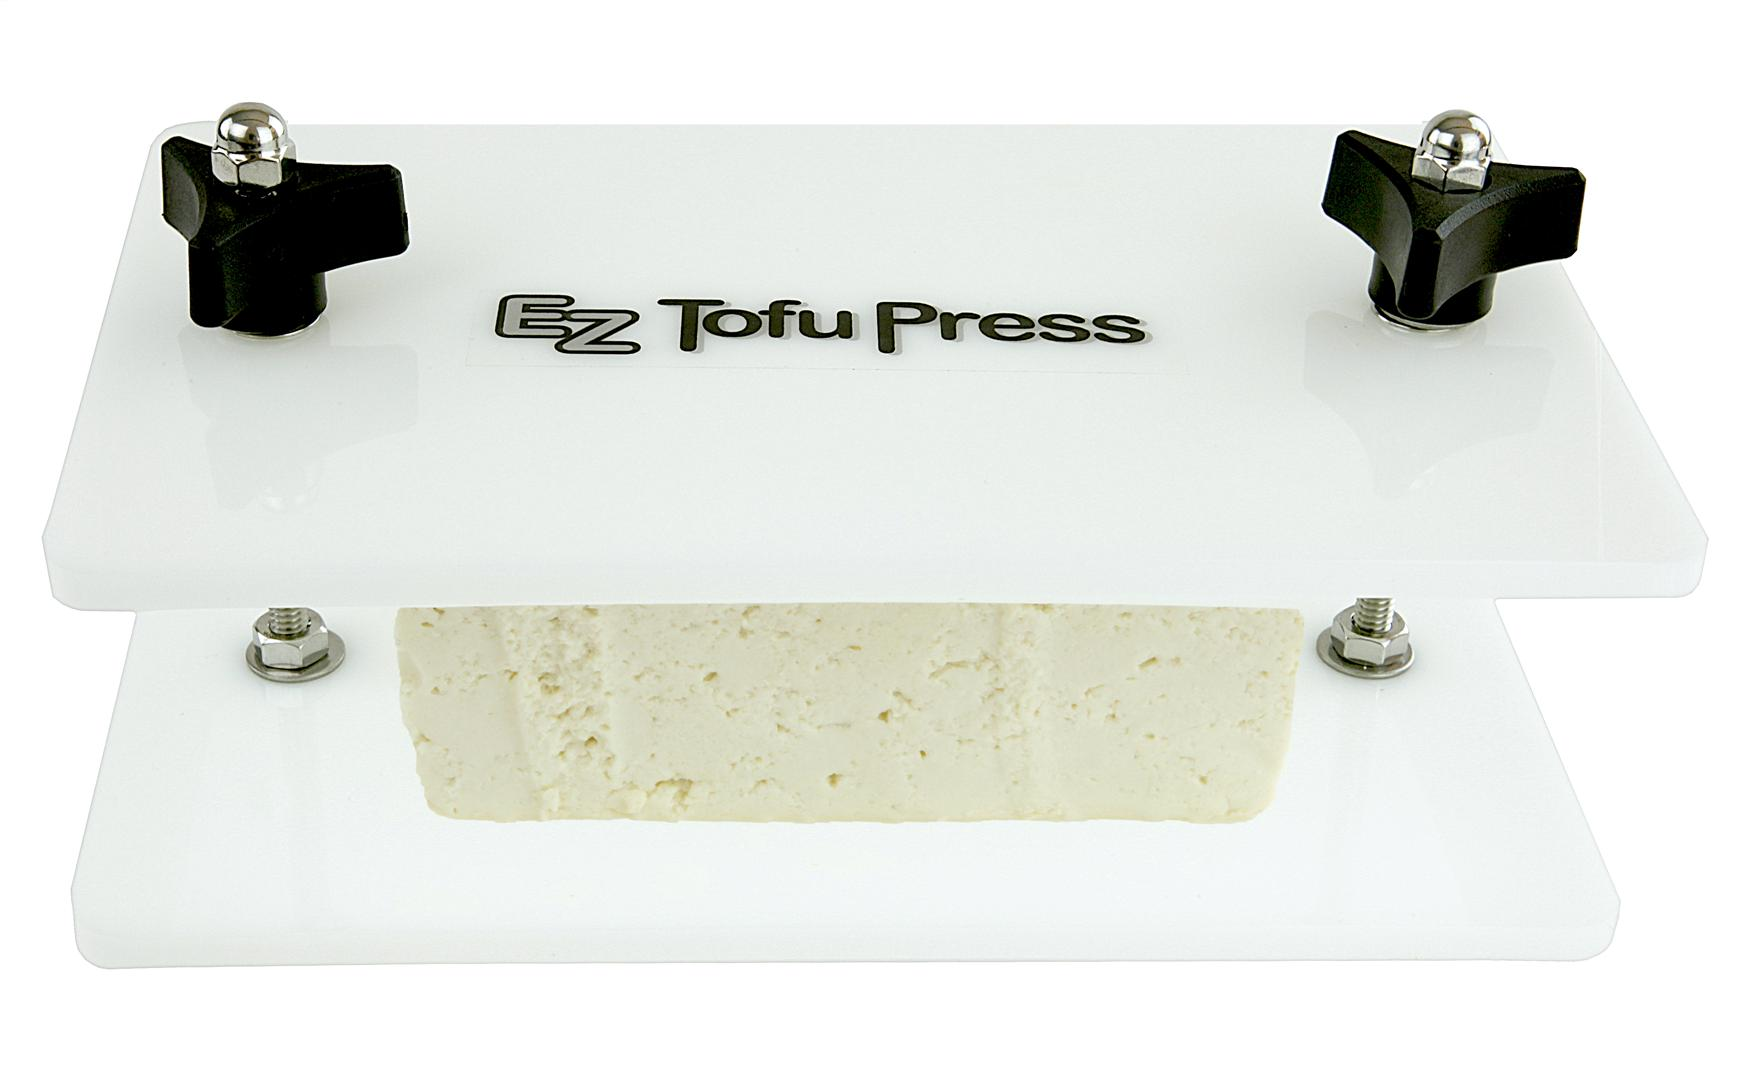 The EZ Tofu Press